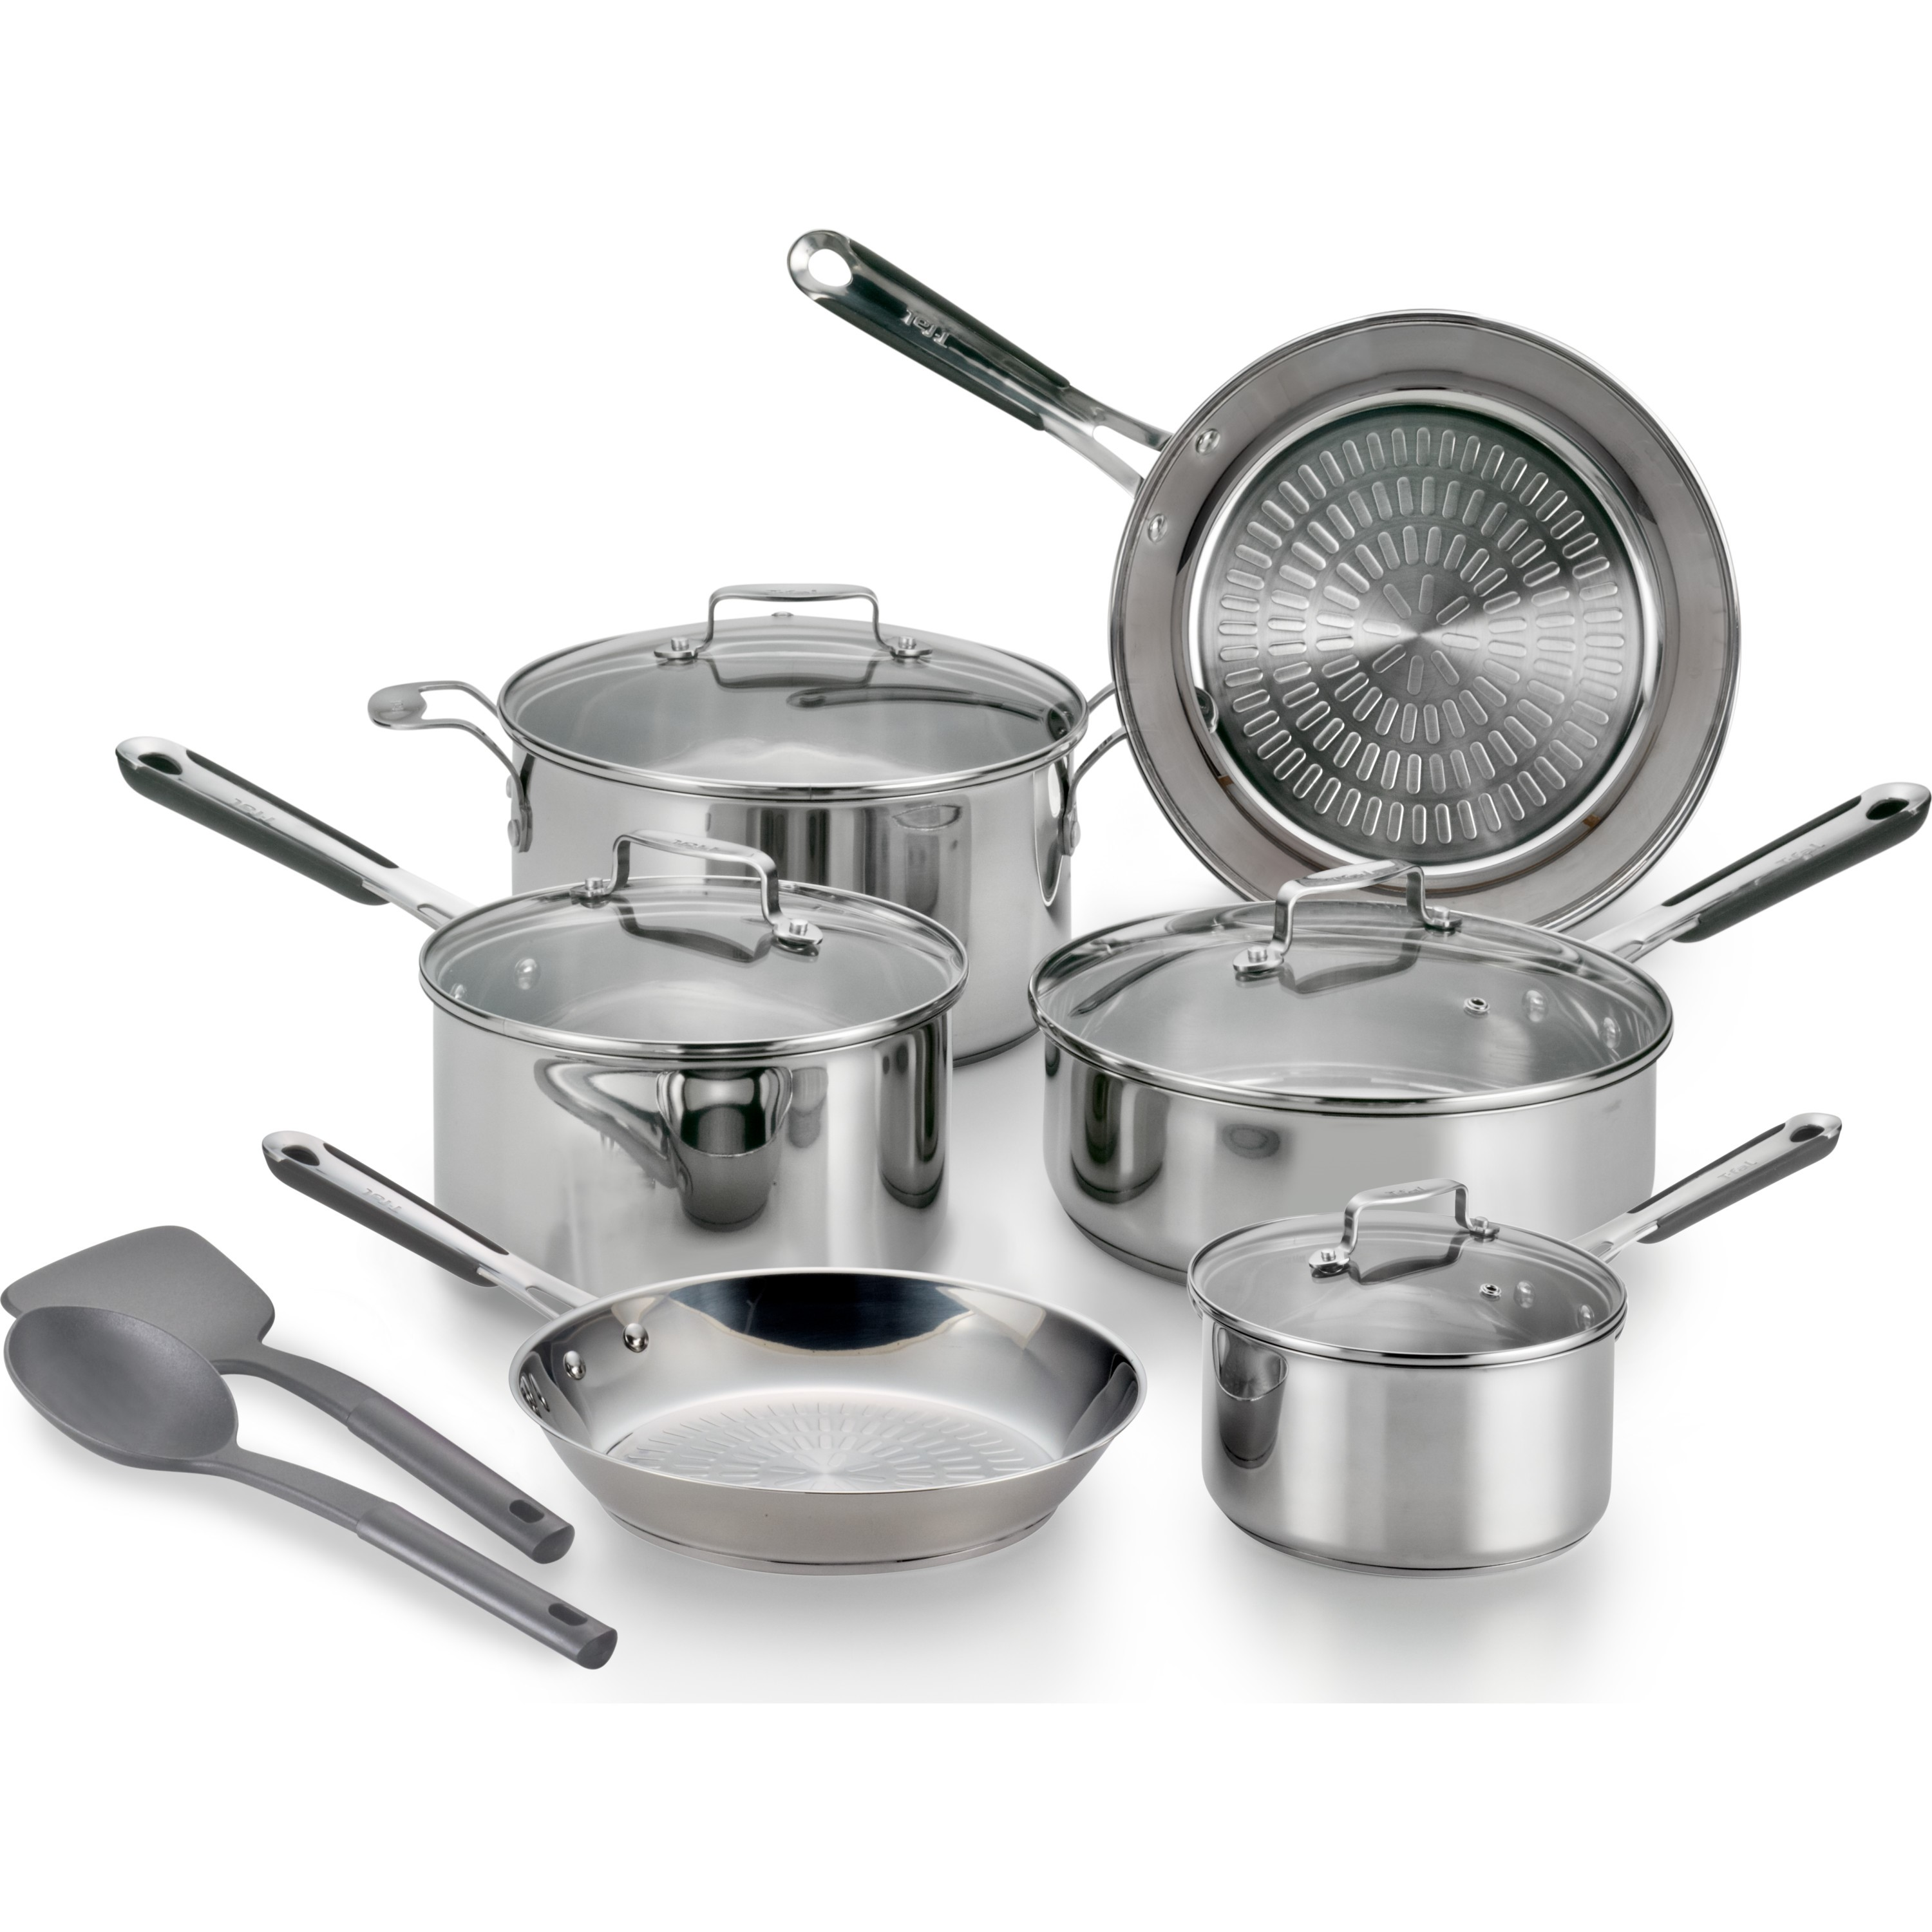 t fal expertpro stainless steel e759sc64 techno release induction compatible cookware 12 pc. Black Bedroom Furniture Sets. Home Design Ideas